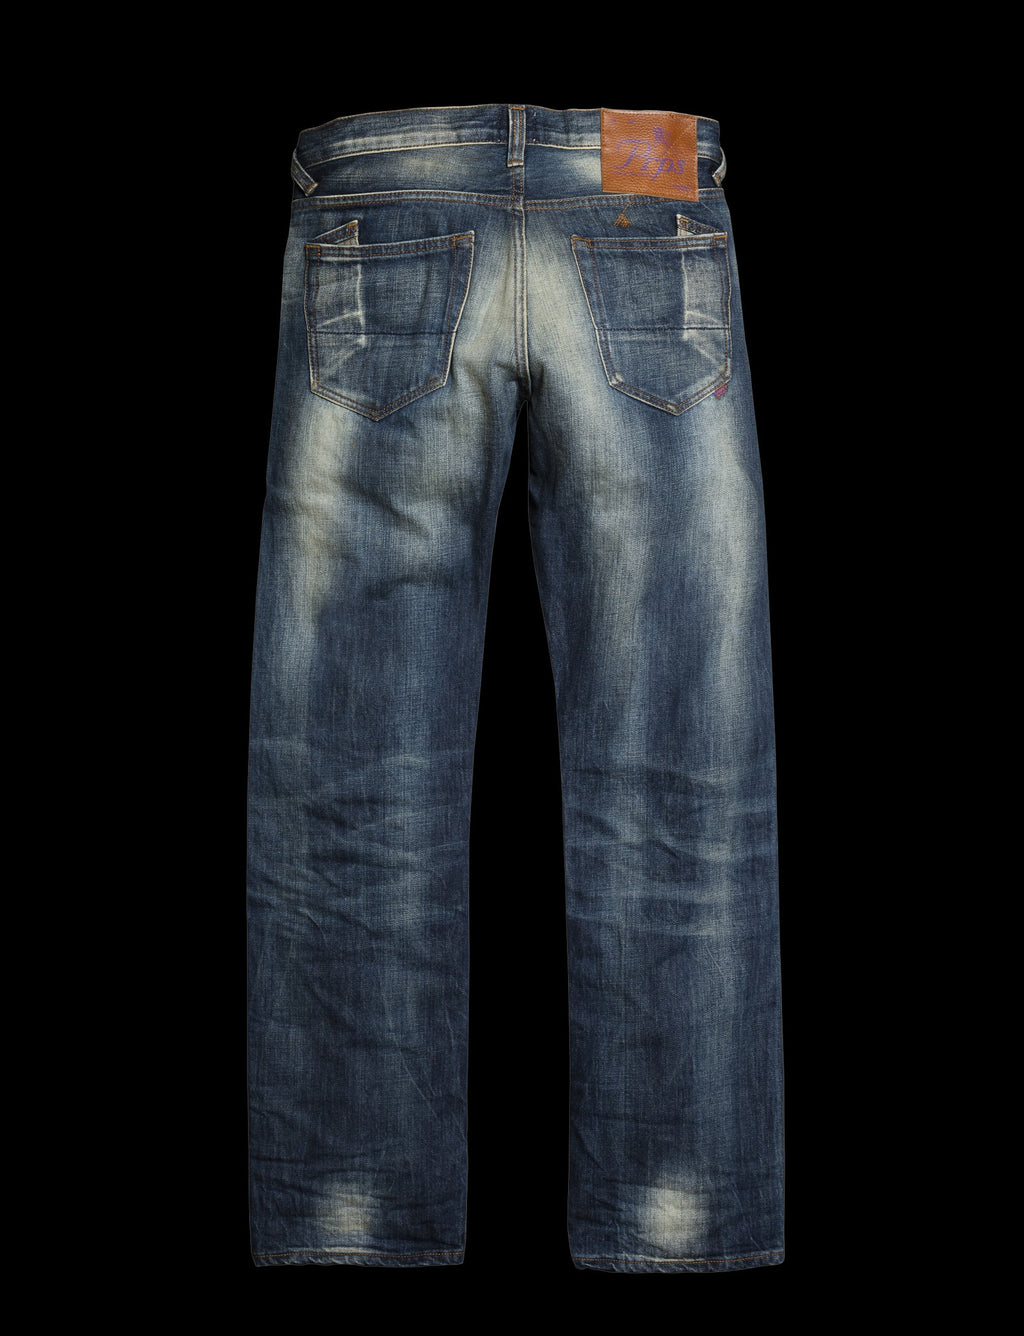 Prps - Barracuda - Selvedge Bailey - Jeans - Prps